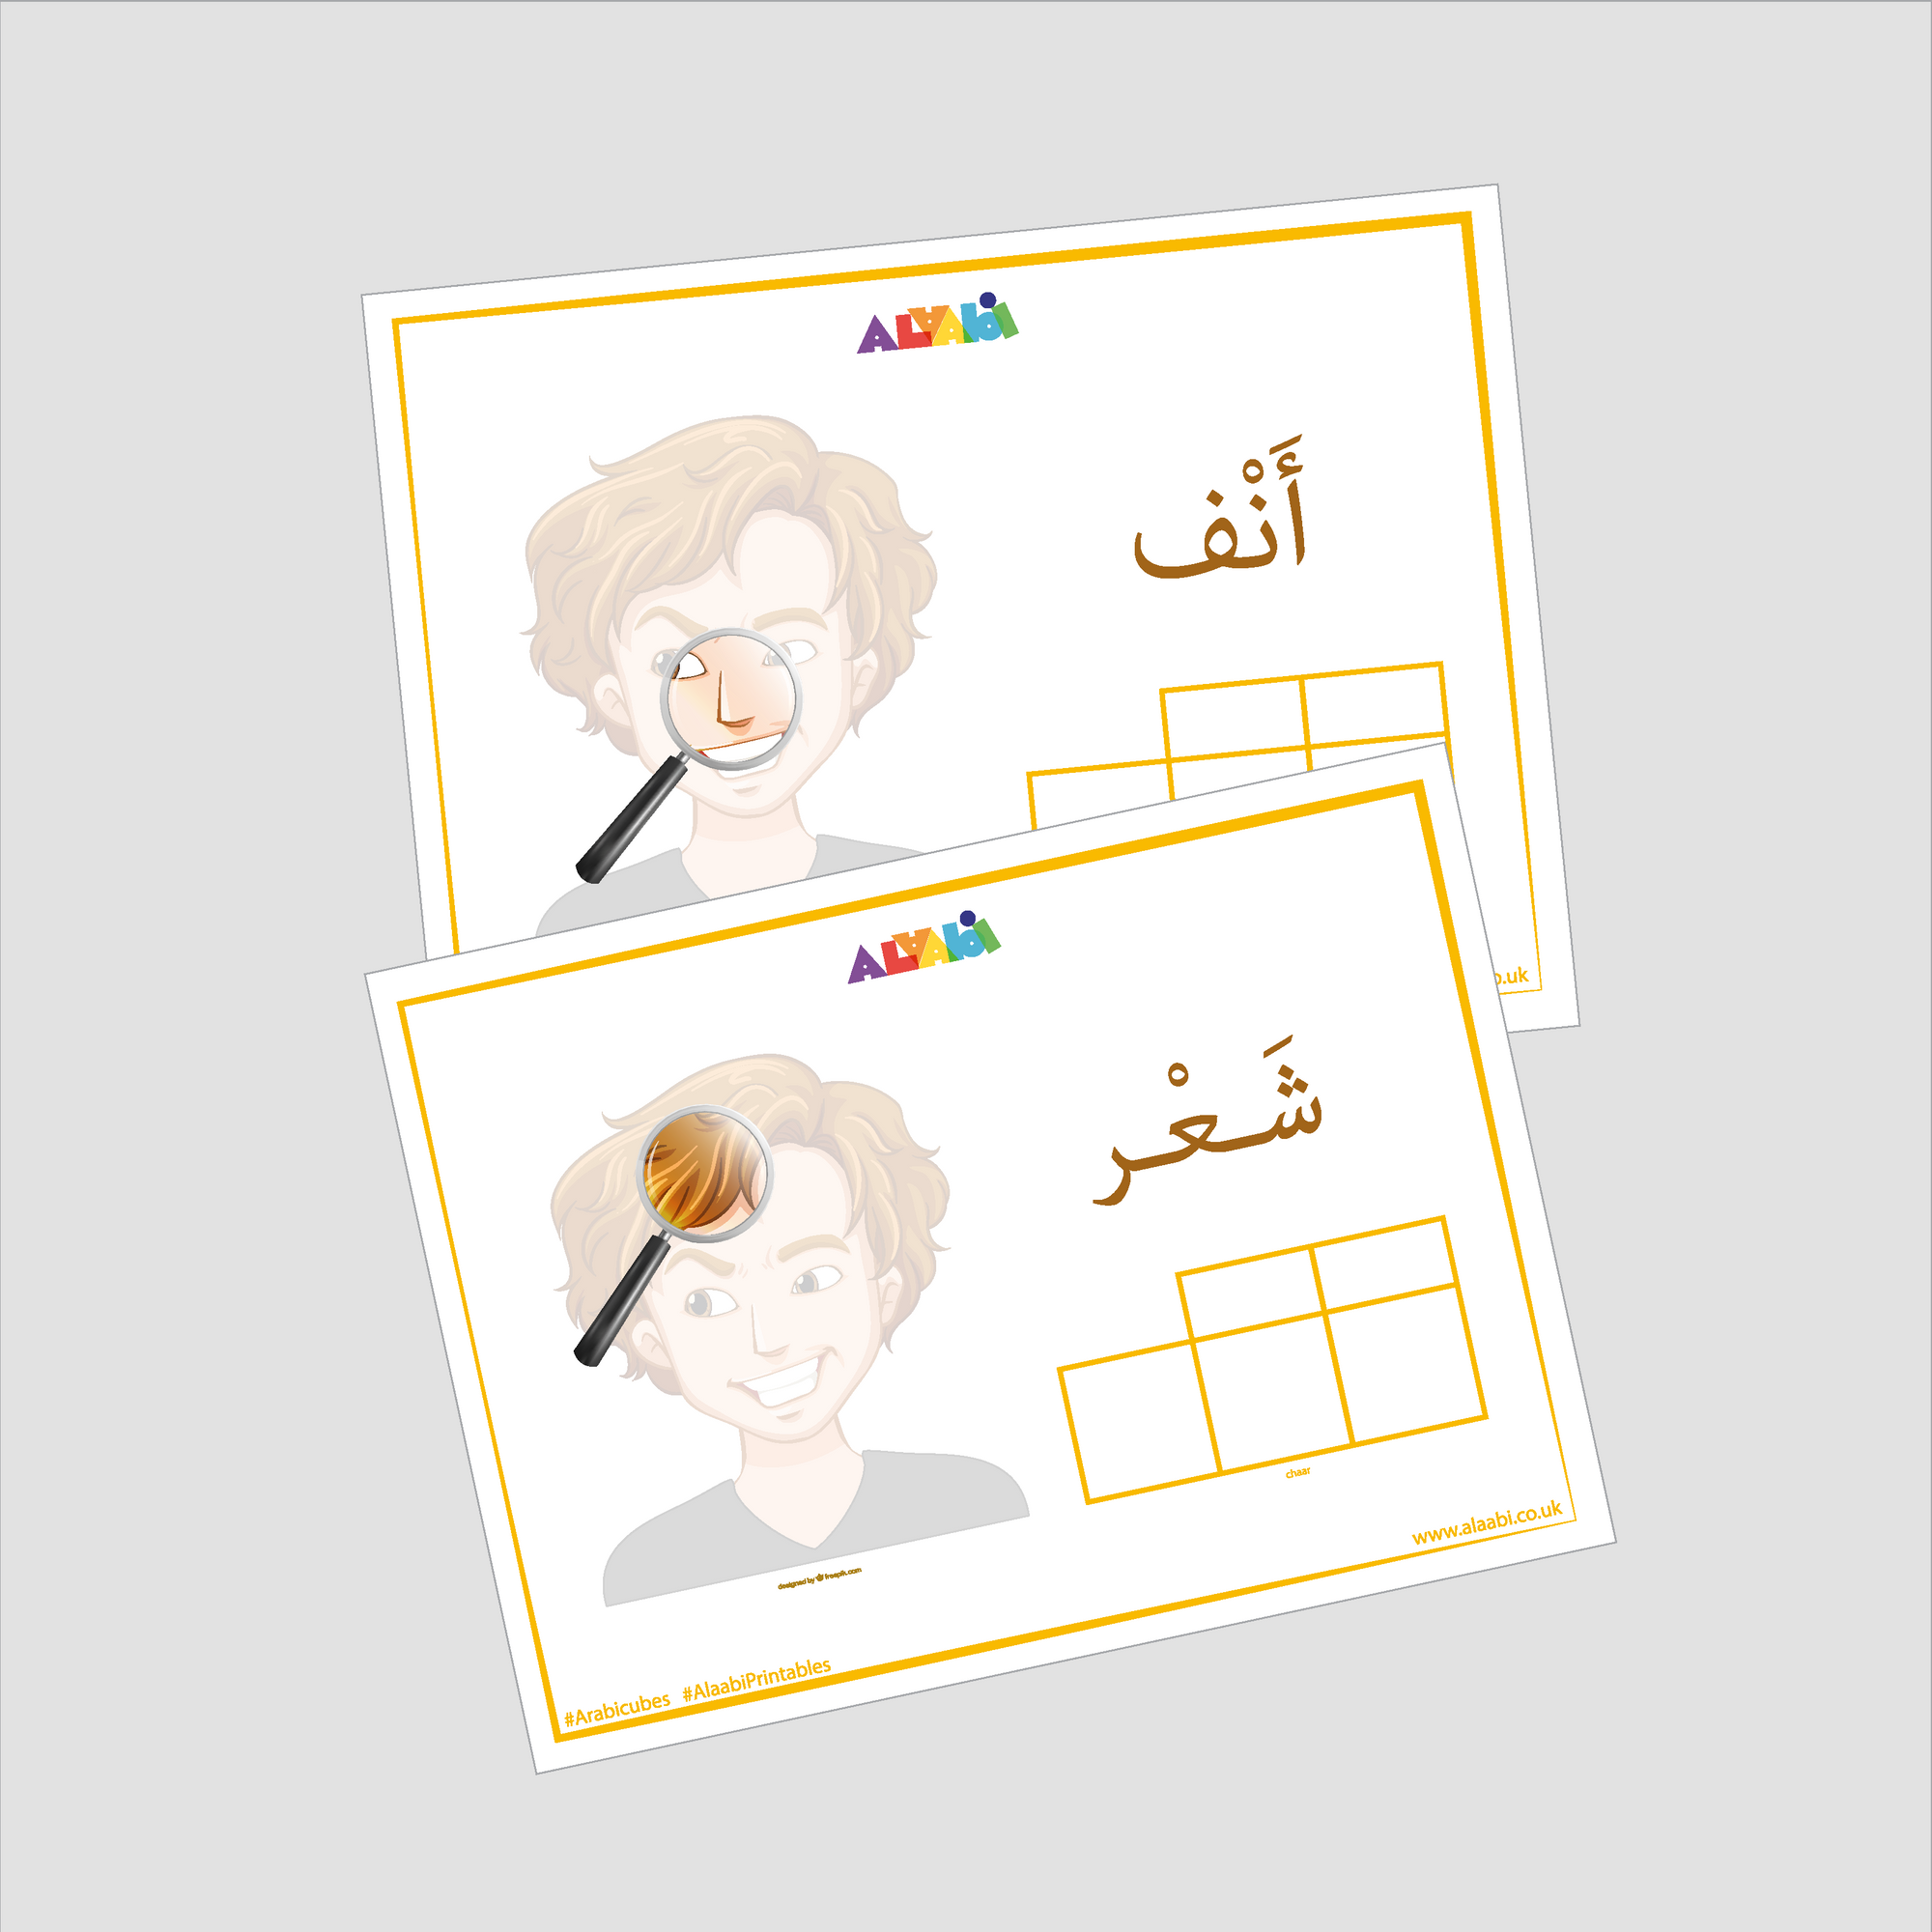 My First Arabic Words: The Face Parts